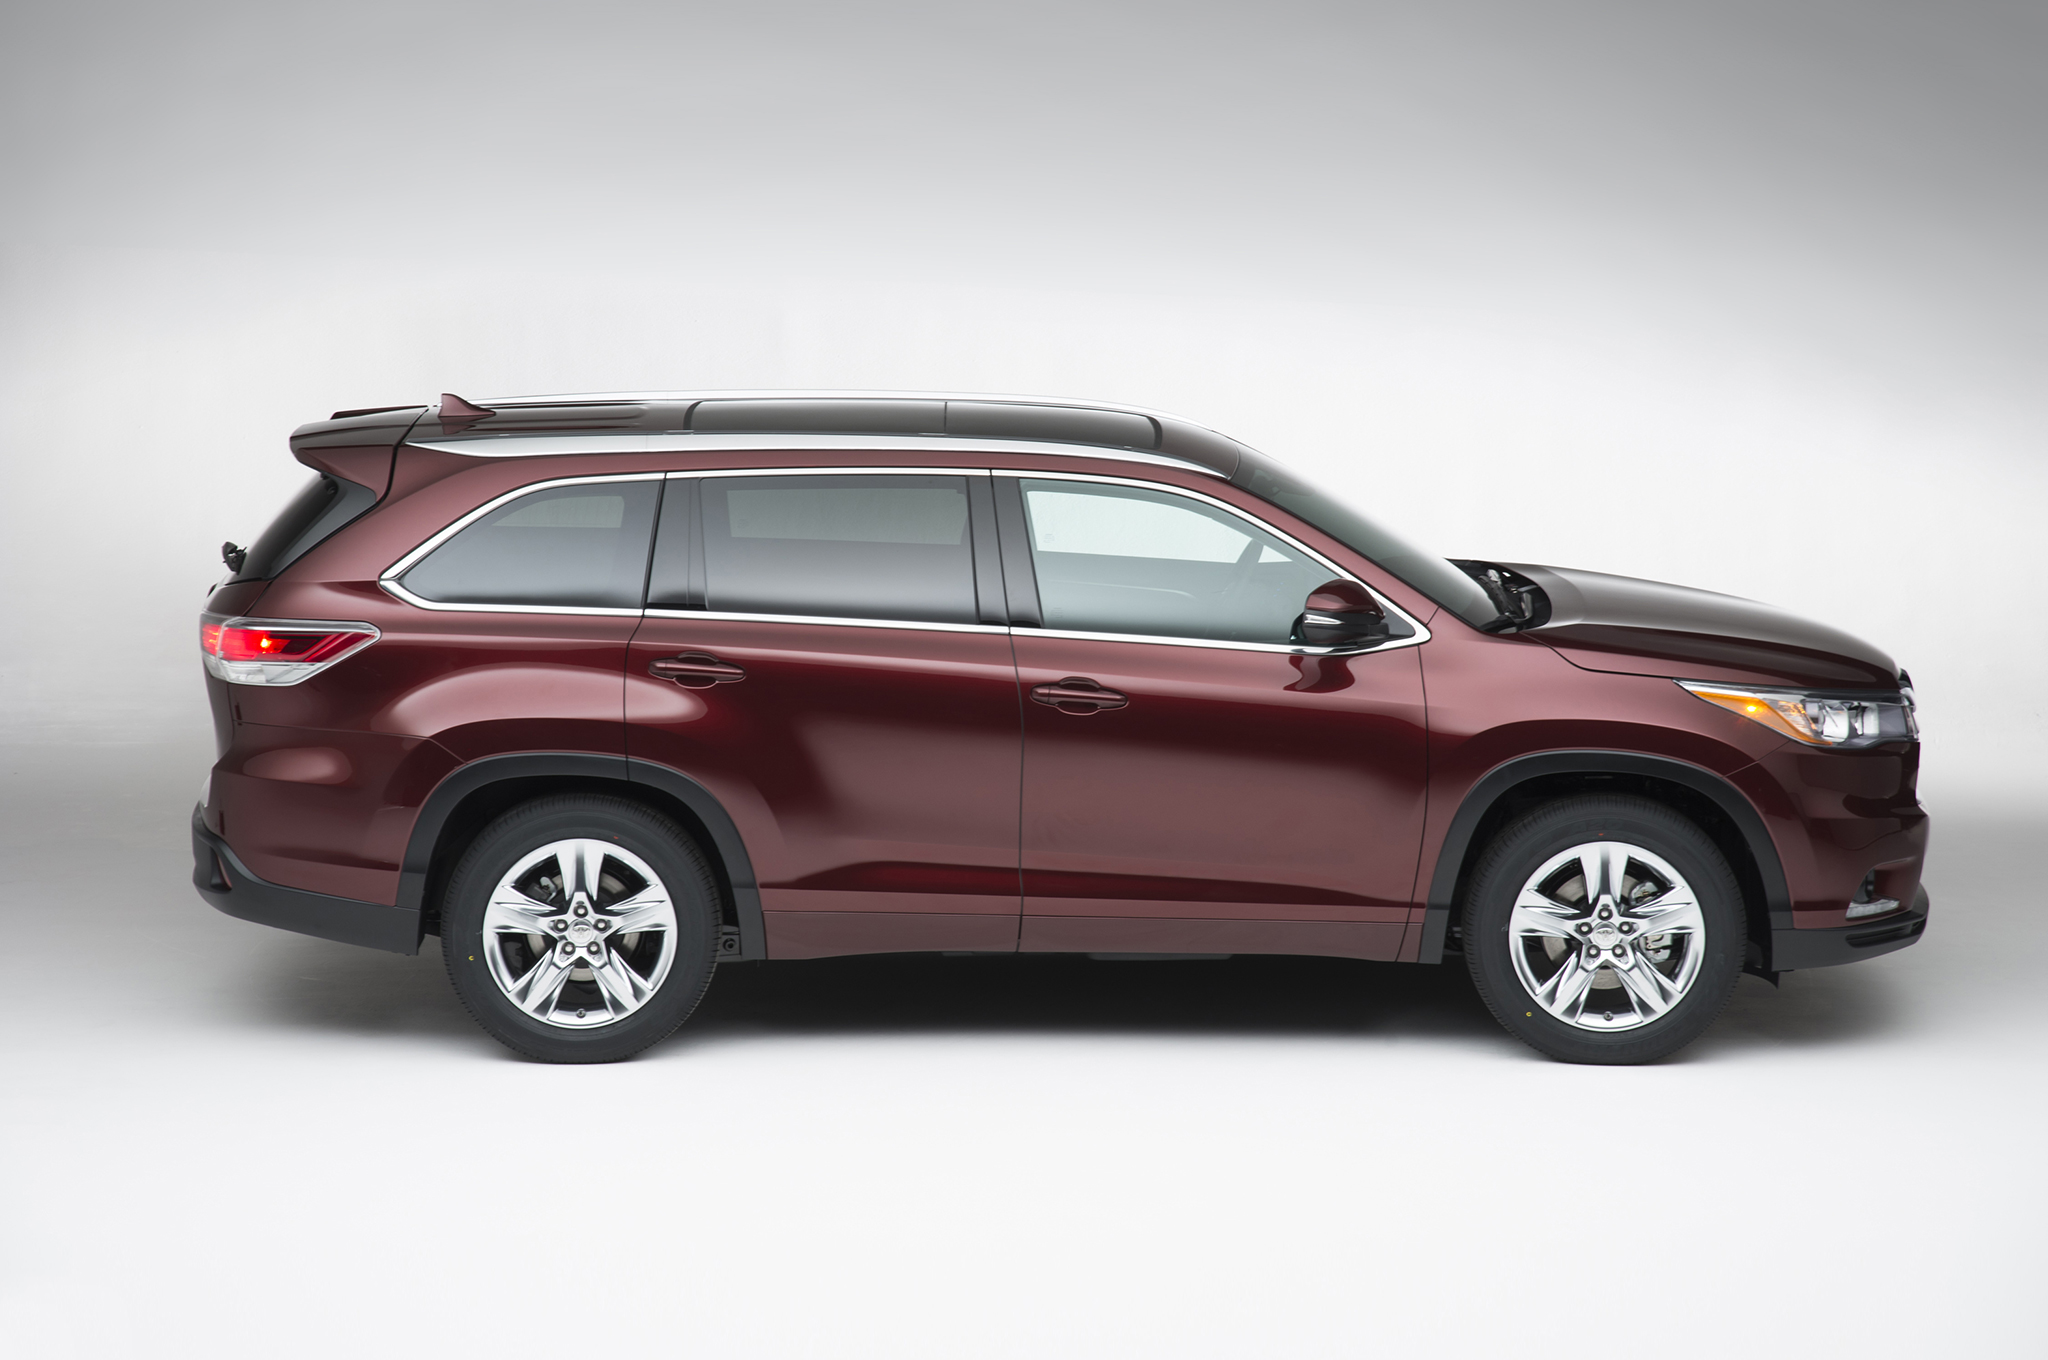 insurance you cars pin highlander msrp suv are features pricing hybrid info viewing toyota